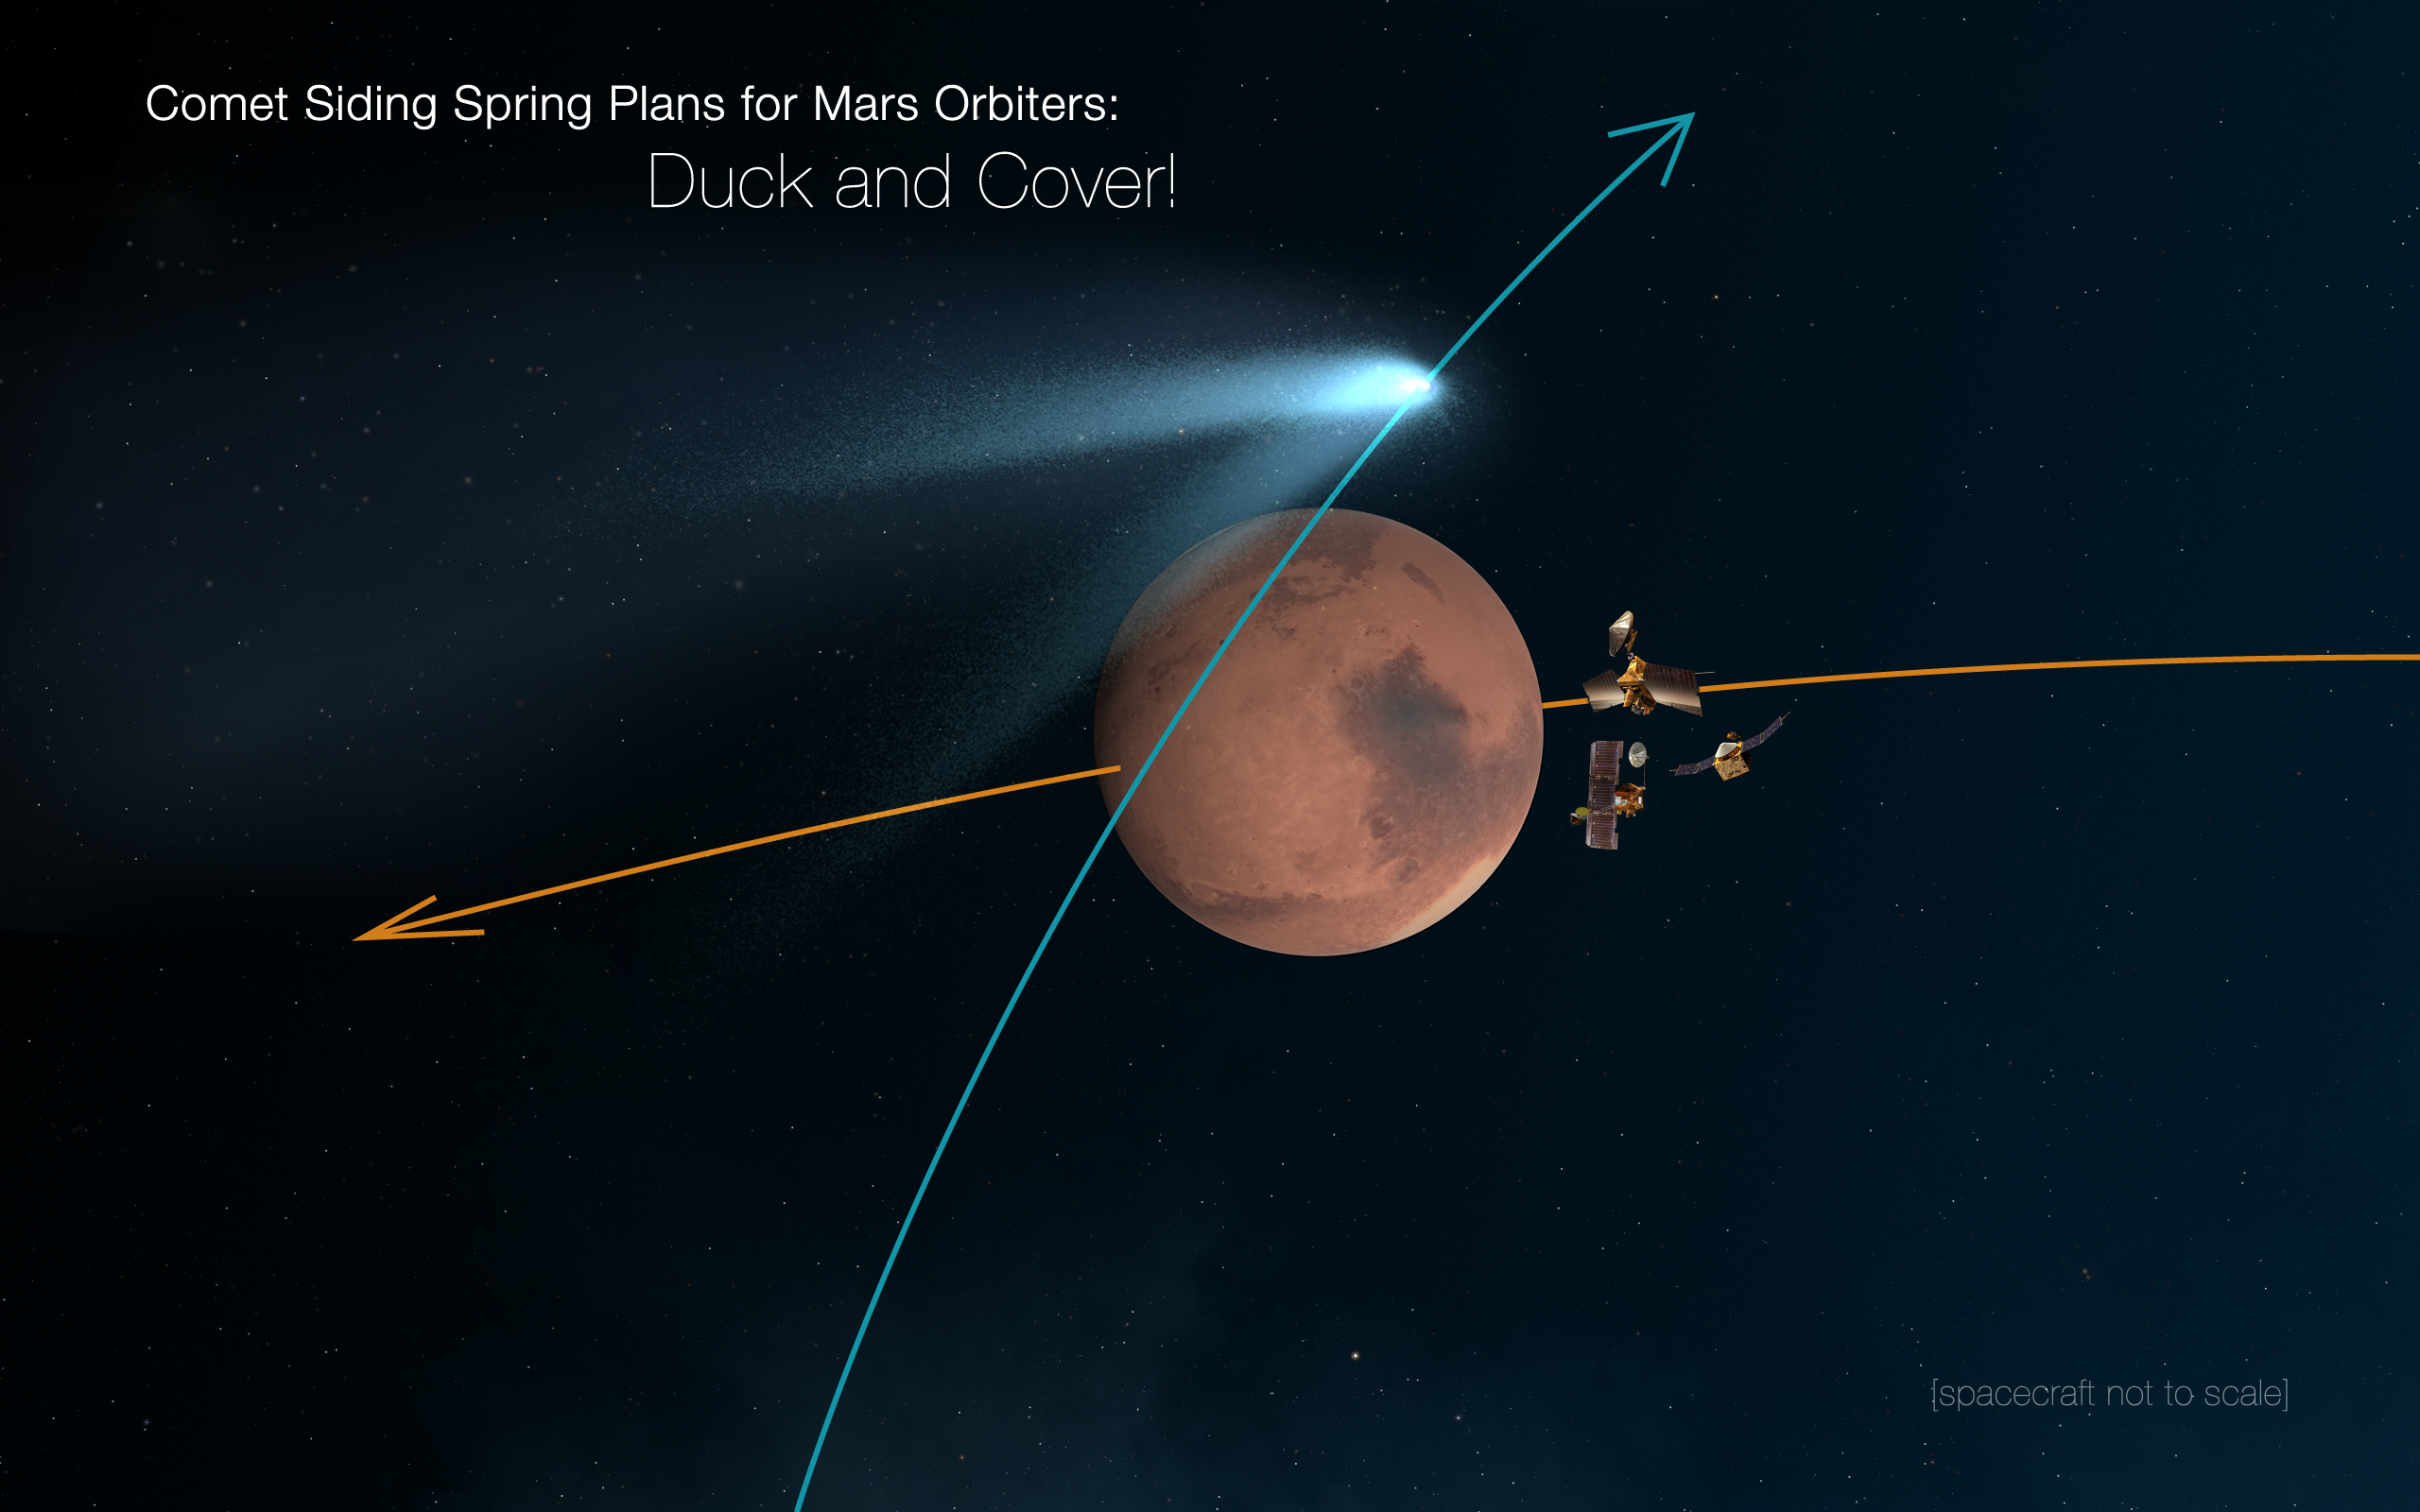 mars orbiters u0027duck and cover u0027 for comet siding spring flyby nasa